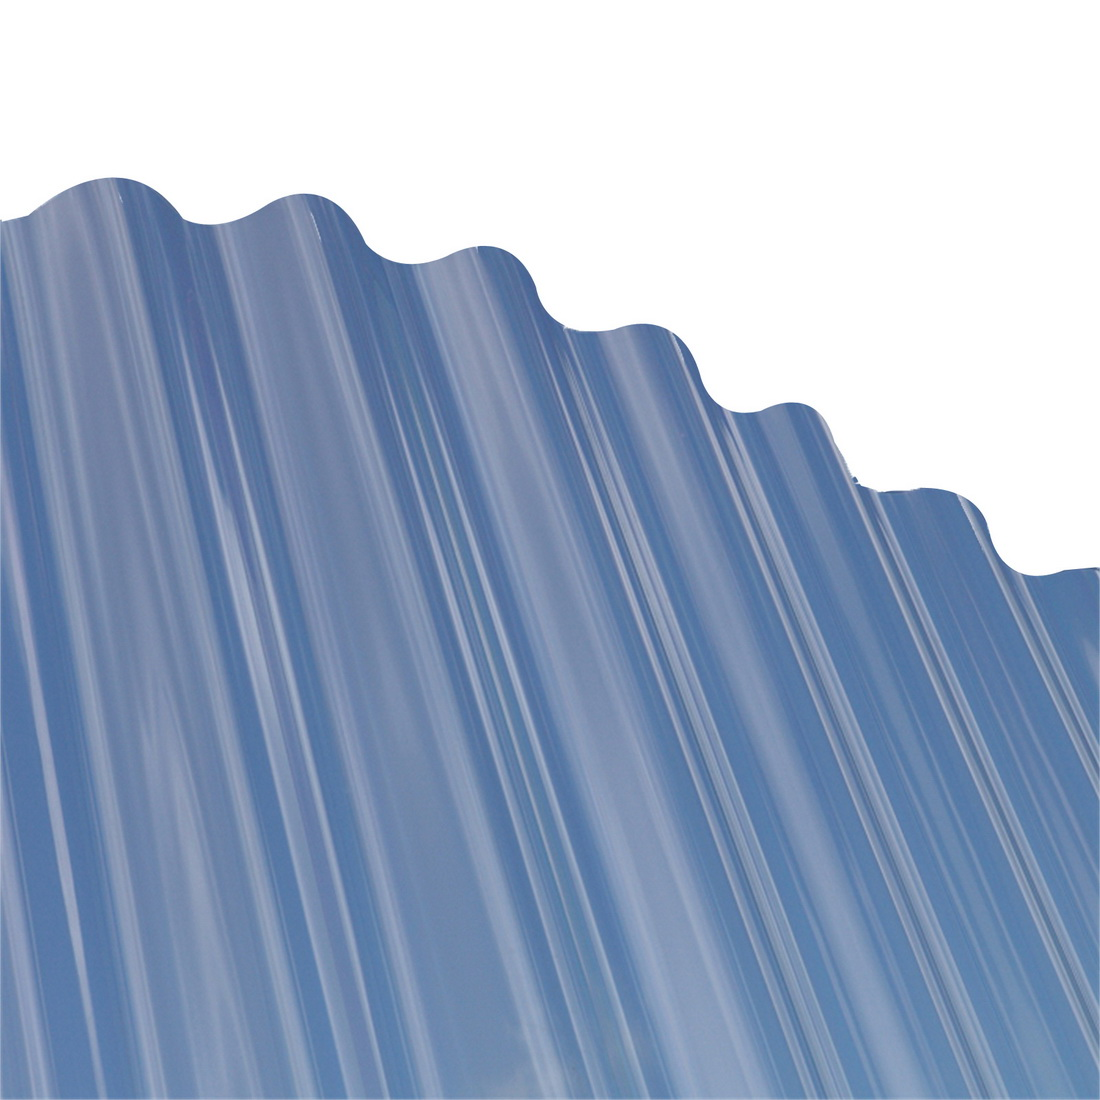 Tufclad Ultra Corrugated Roofing 3600 x 860 x 0.8mm Polycarbonate Clear TFU-CORR-CLR-3600